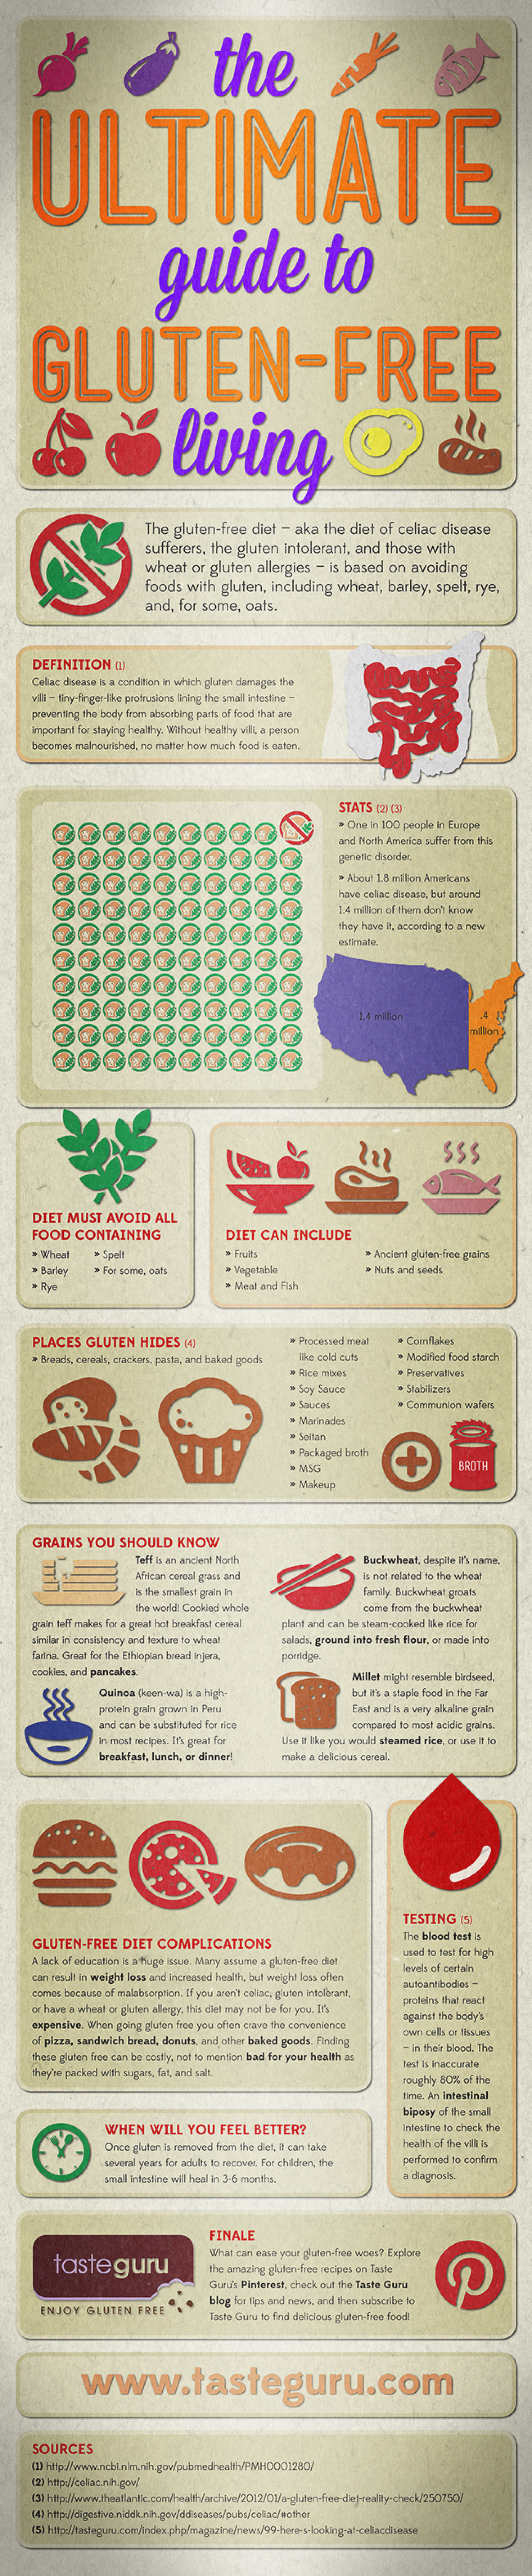 The Ultimate Guide to Gluten-Free Living Infographic